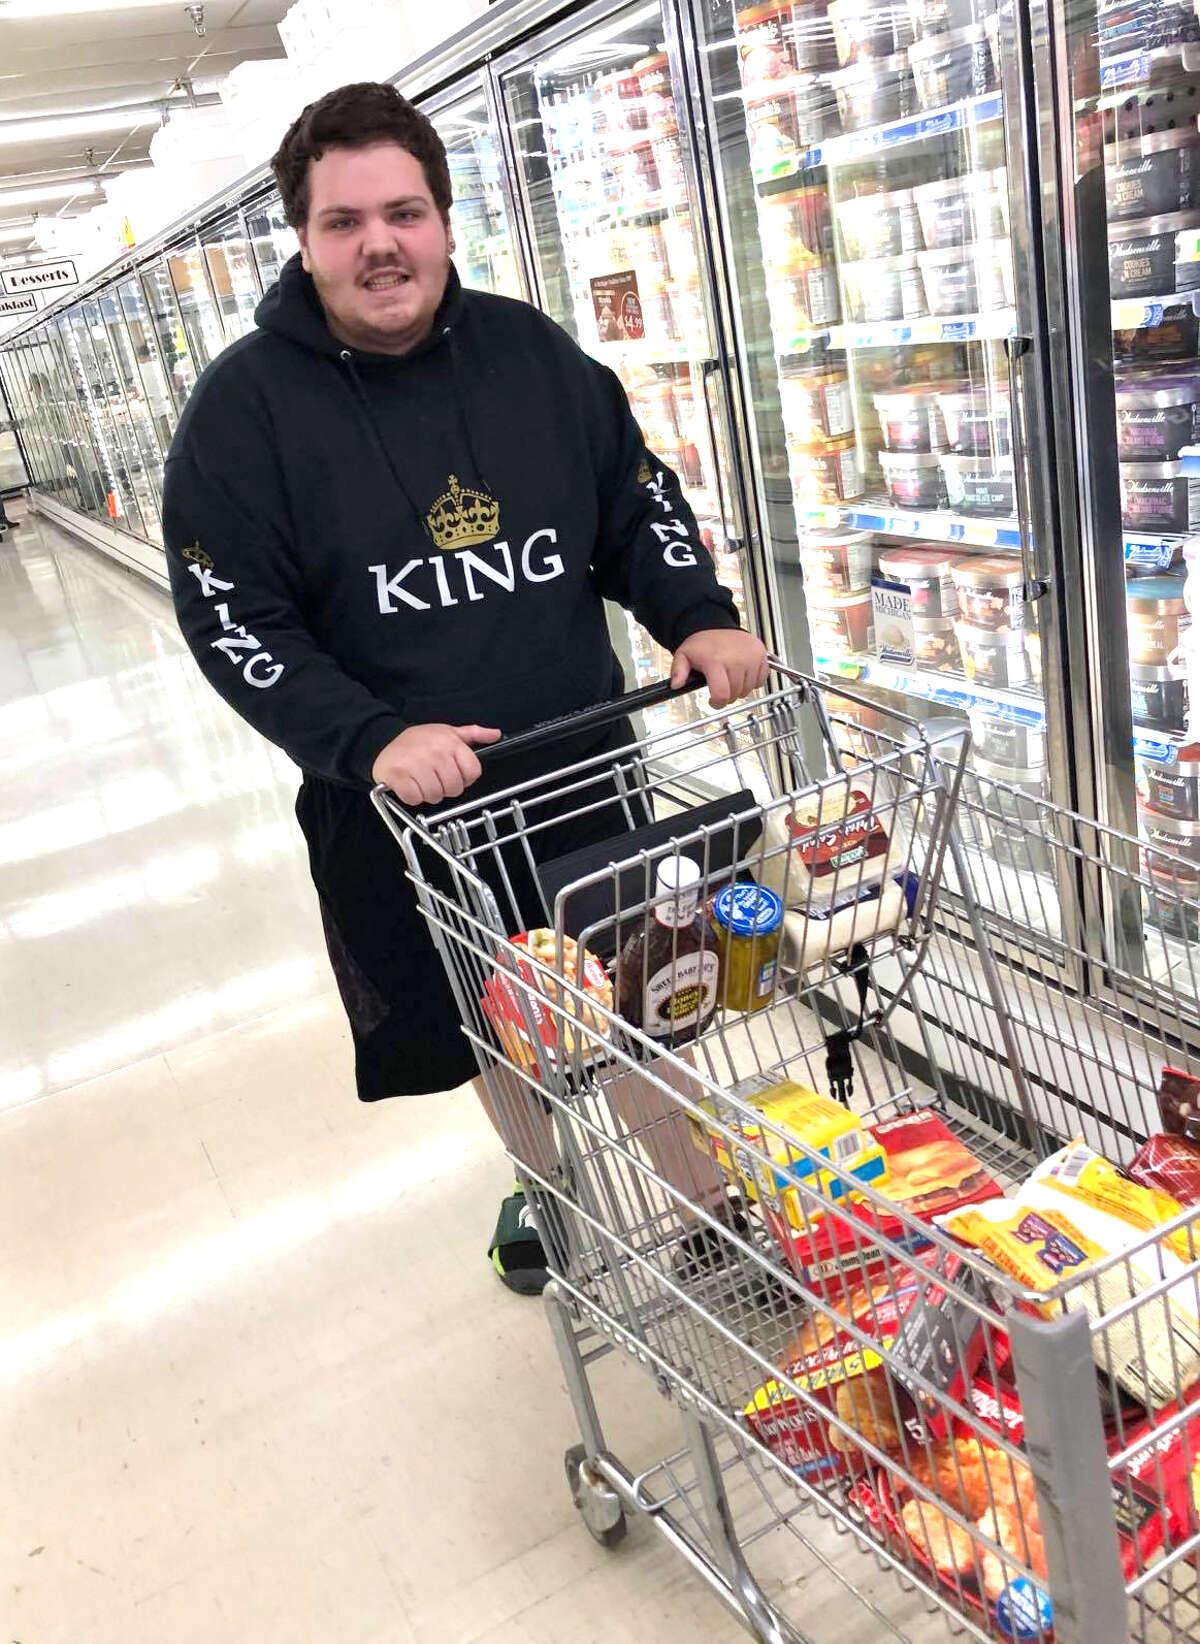 Tyler Joseph, 21, of Big Rapids, flashes a smile for the camera during a recent grocery shopping trip. For the last couple of months, Joseph has been buying groceries for those in need out of a random act of kindness. Joseph said he's happy he can help support a community that supported him during difficult times in his life.